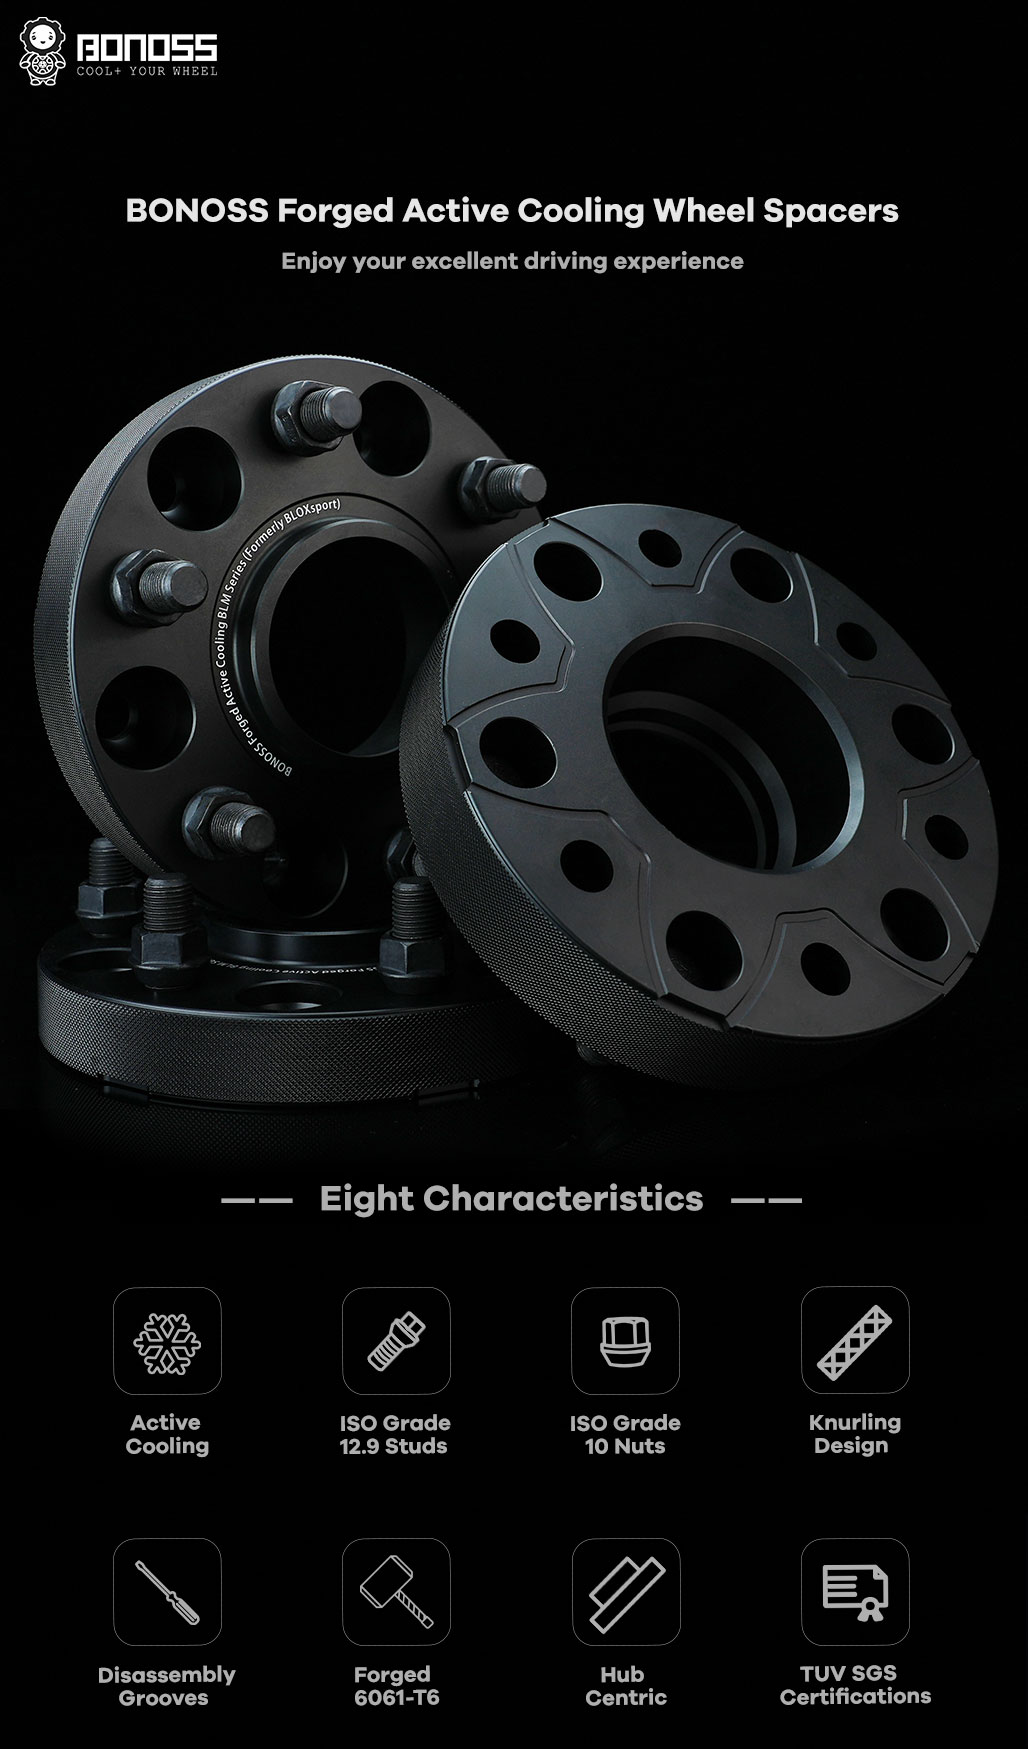 BONOSS Forged Active Cooling Hubcentric Wheel Spacers 6 Lug Wheel Adapters Wheel ET Spacers Car Wheel Spacers S (1)